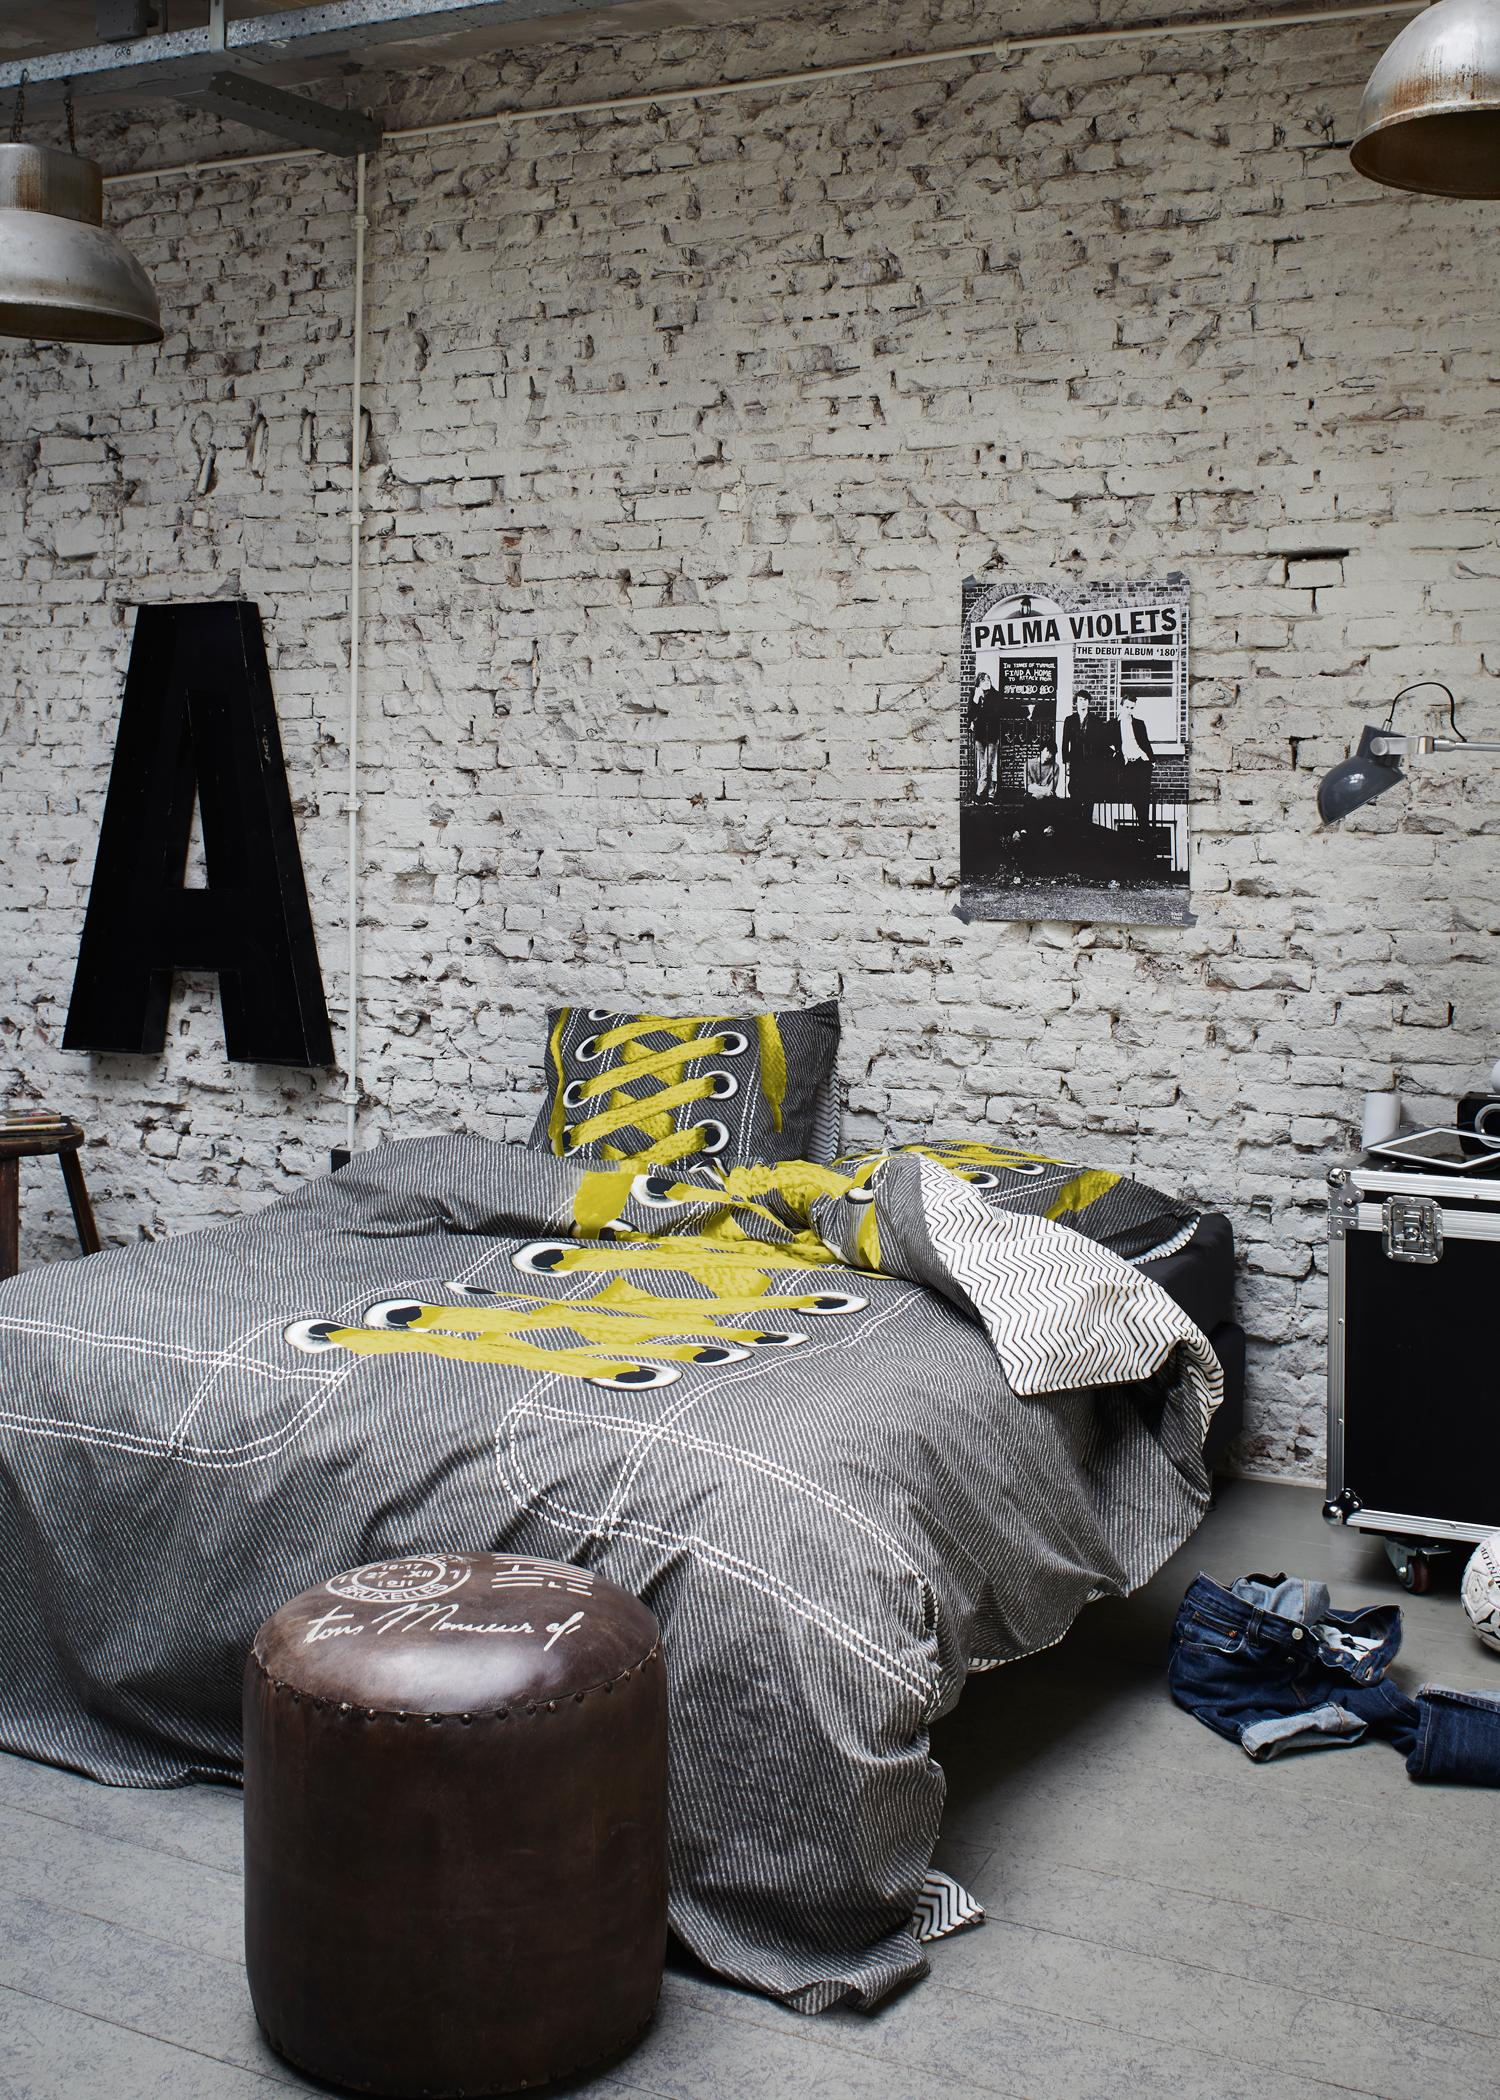 Industrie-Look im Schlafzimmer #bettwäsche #jugendzimmer #wanddeko #grauerbodenbelag #jugendbett ©Essenza Home/Covers & Co